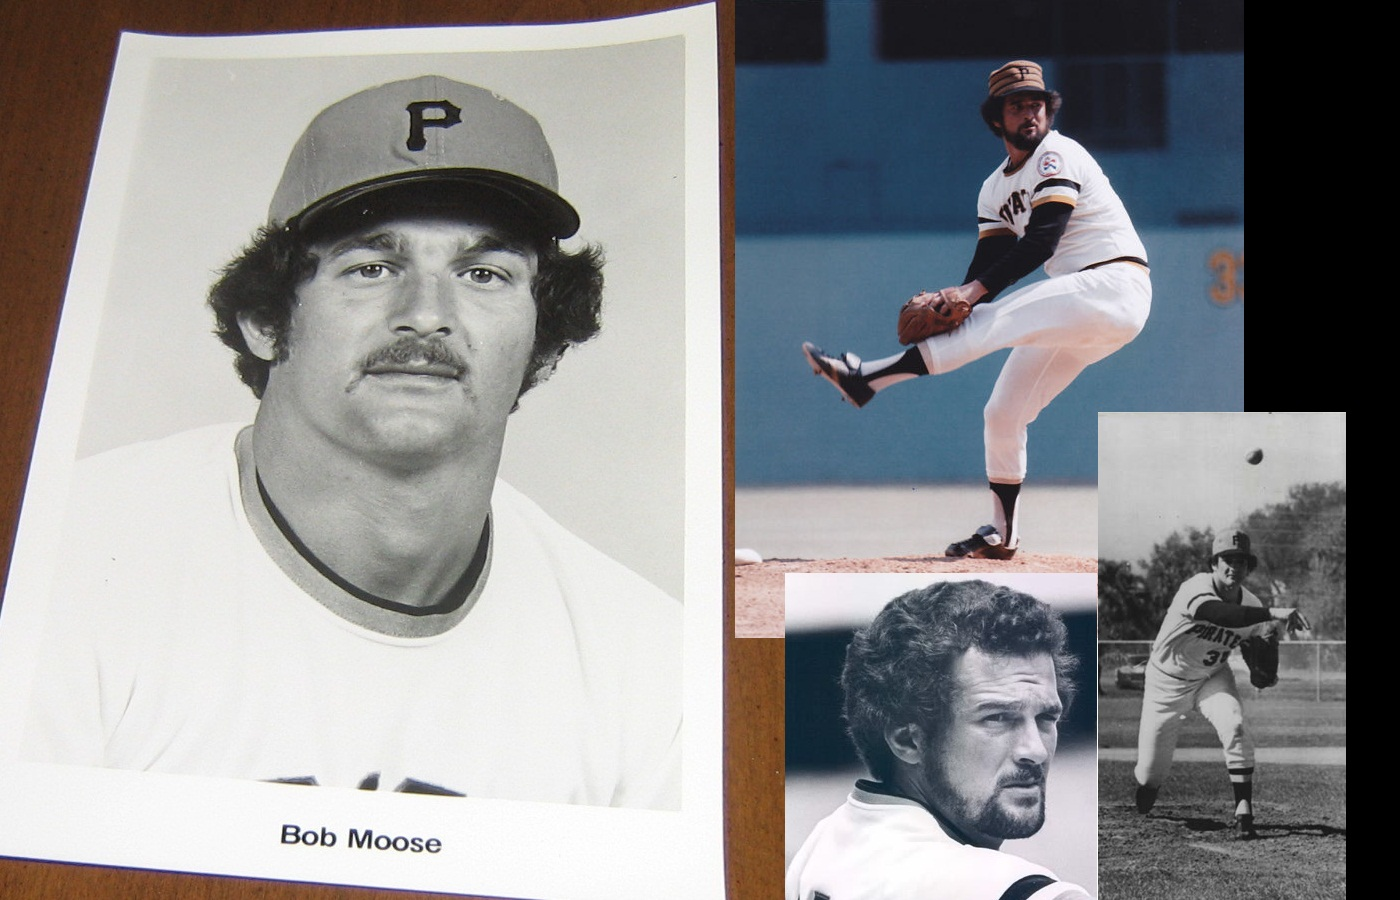 Bob Moose Pittsburgh Pirates Pitcher